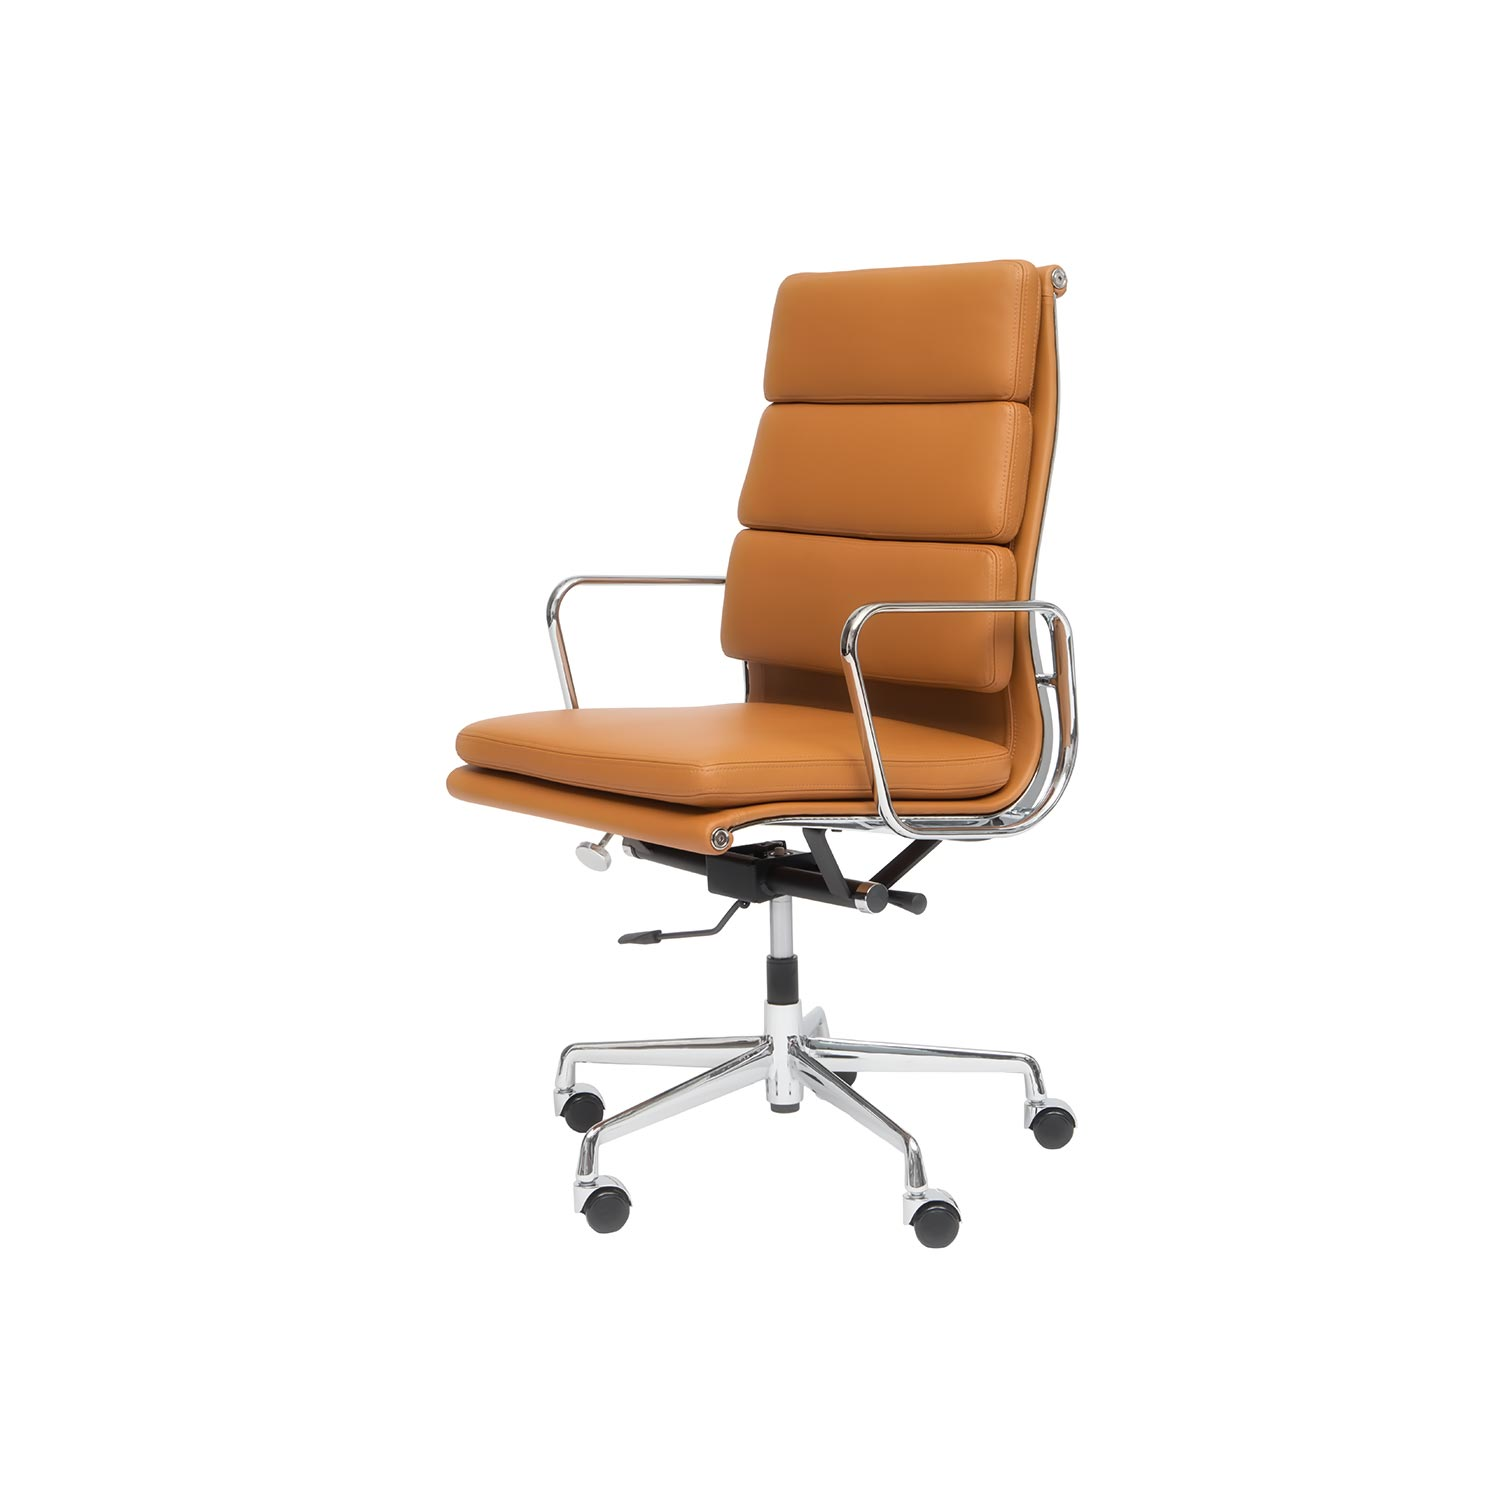 Eames Designed Soft Pad Chair Ea 219 A Steelform Design